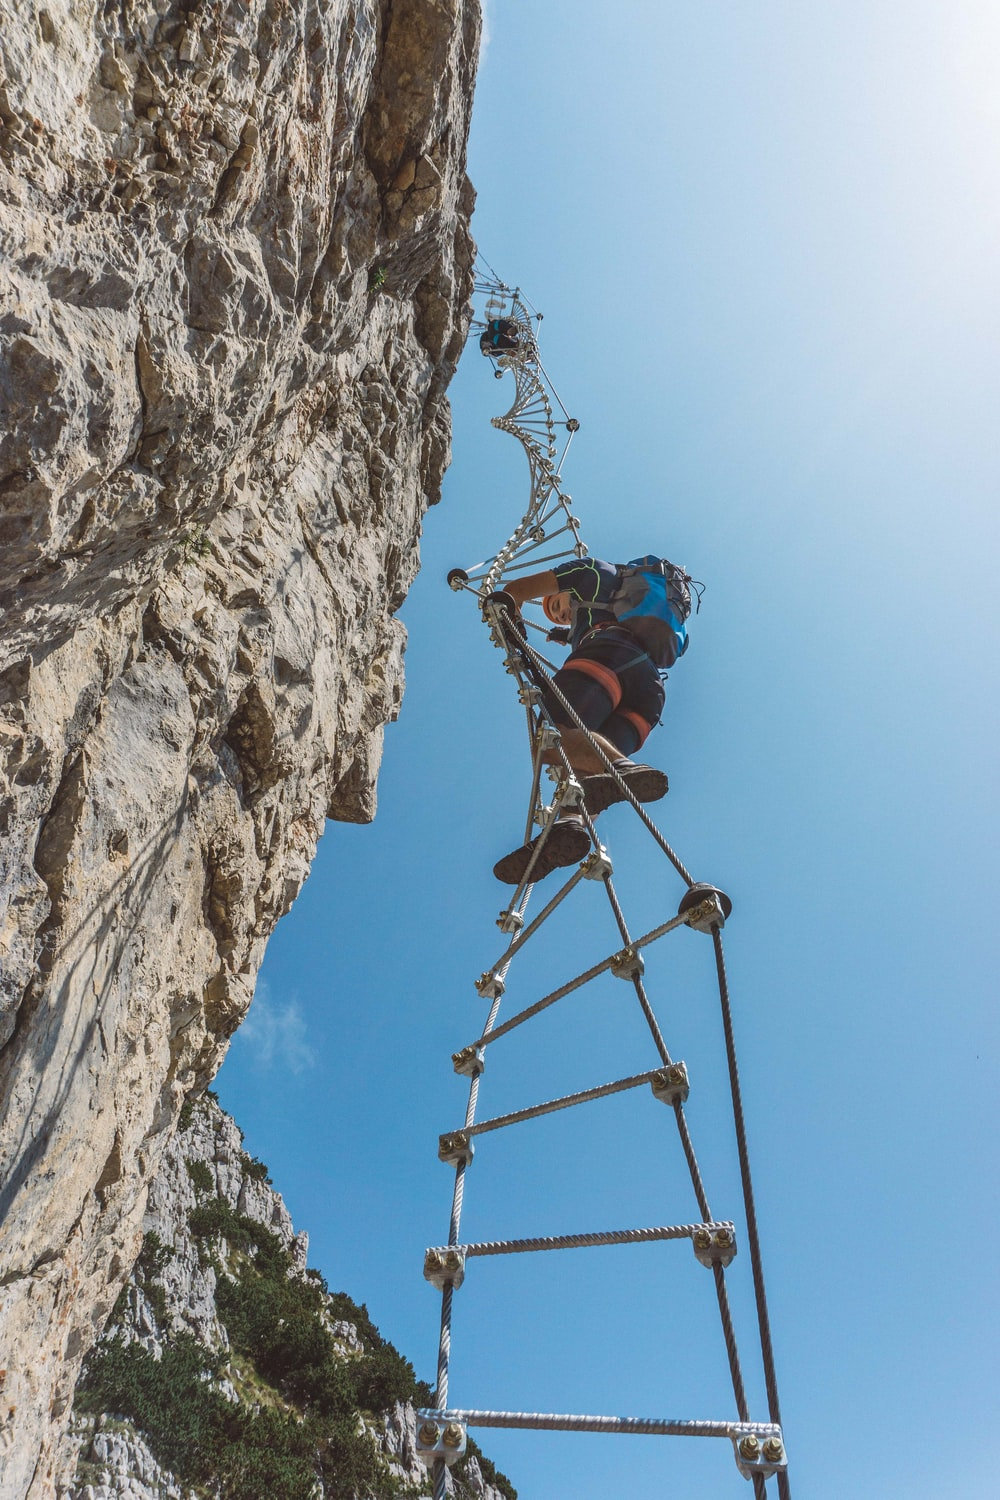 person climbing rope ladder